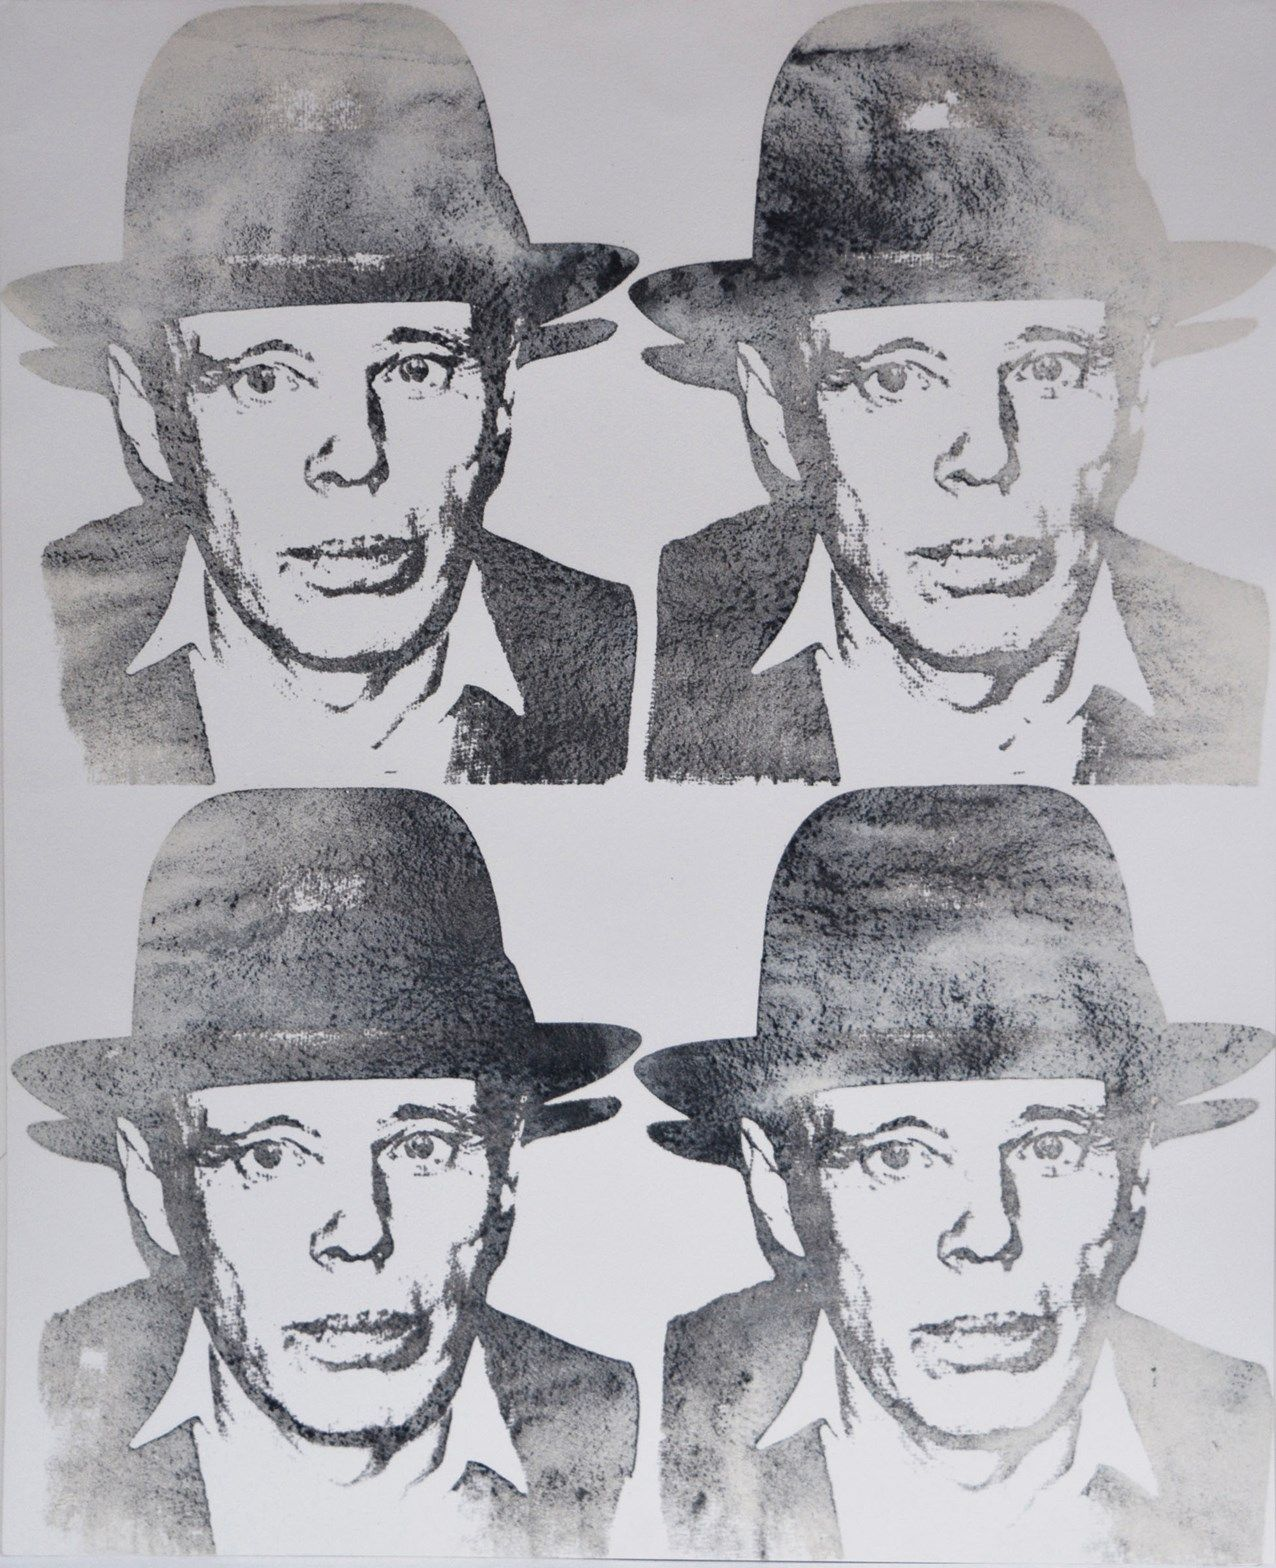 Andy Warhol, J Beuys, 1980-83